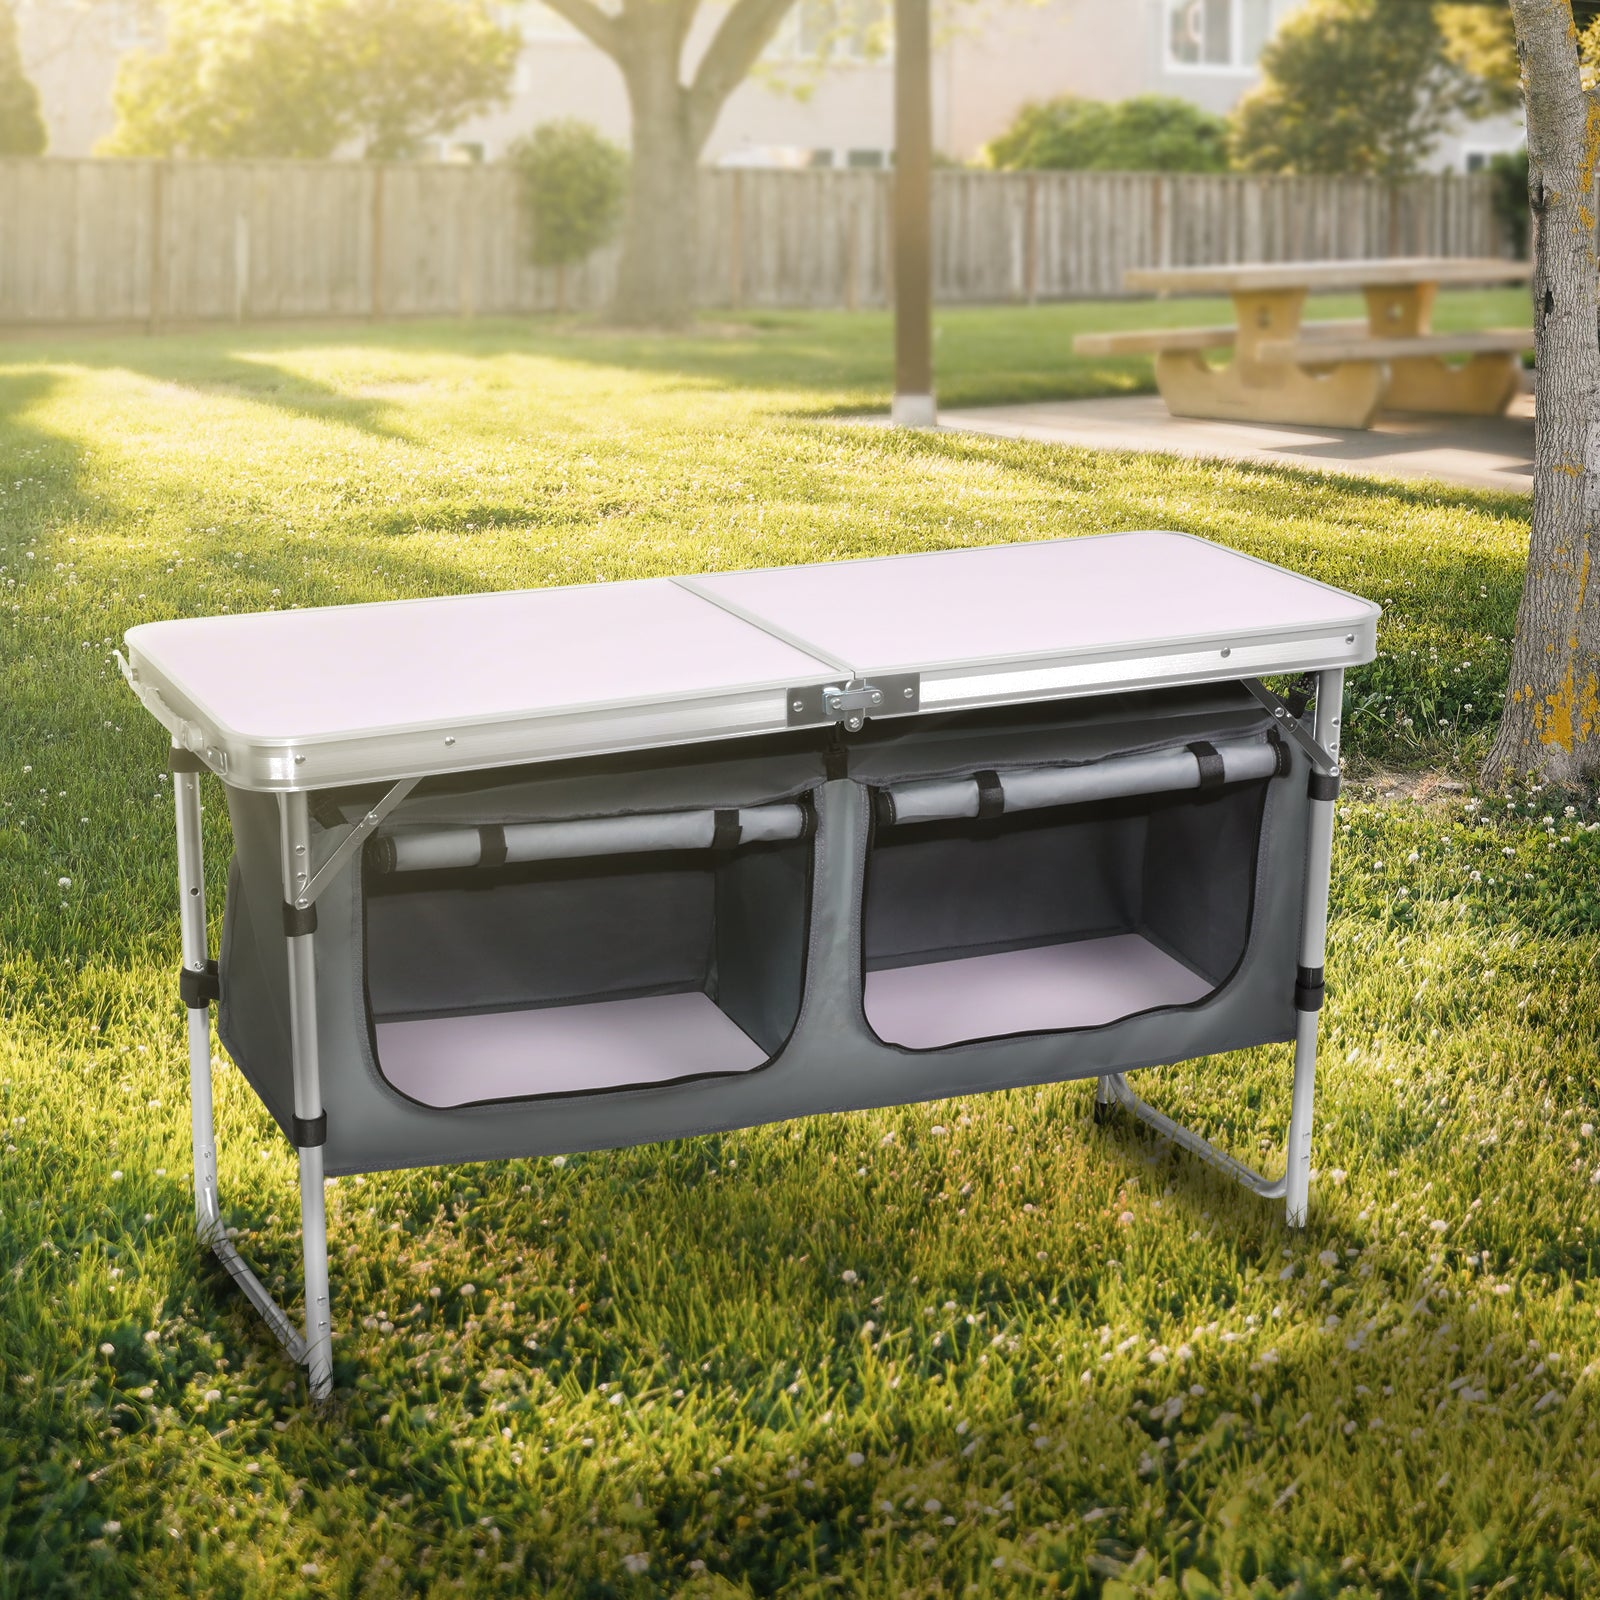 Dark Slate Gray Folding Camping Picnic Table w/Extended Panel, Compact Aluminum Lightweight Picnic Table